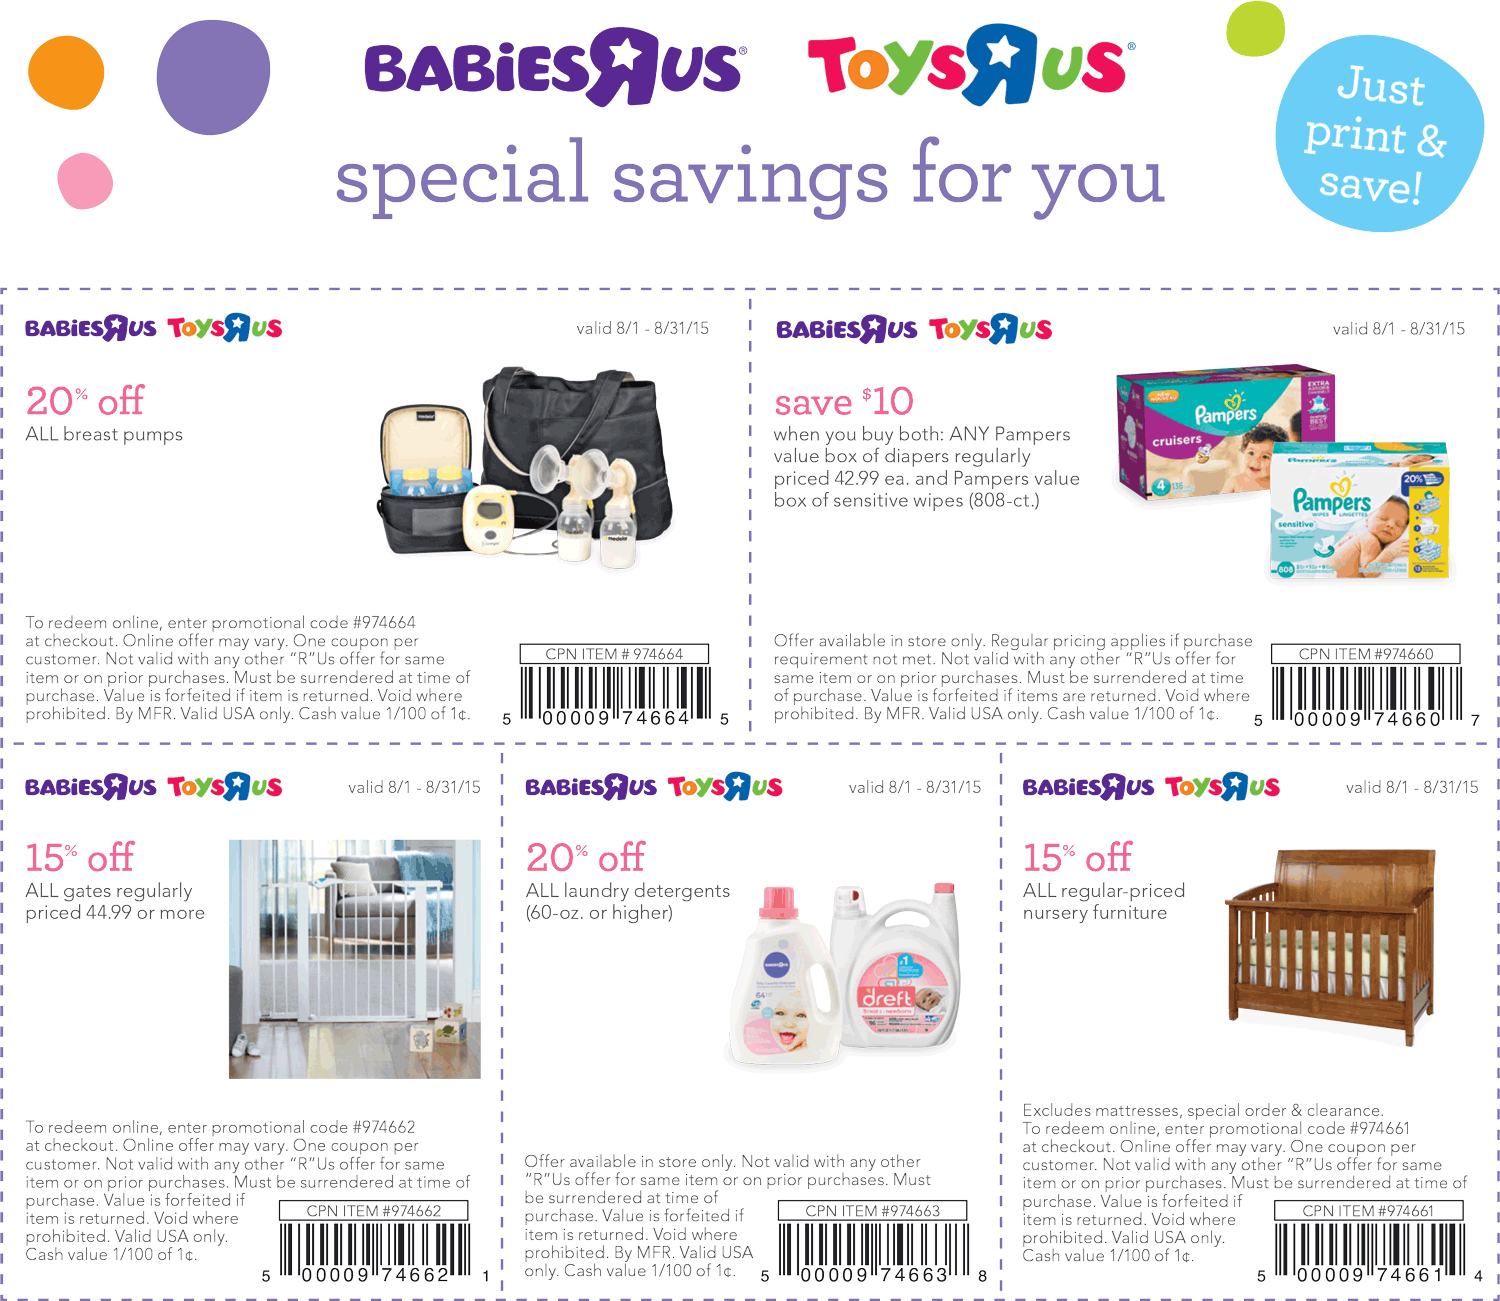 Toys R Us Coupon March 2017 $10 off diapers, 15% off furniture & more at Babies R Us & Toys R Us